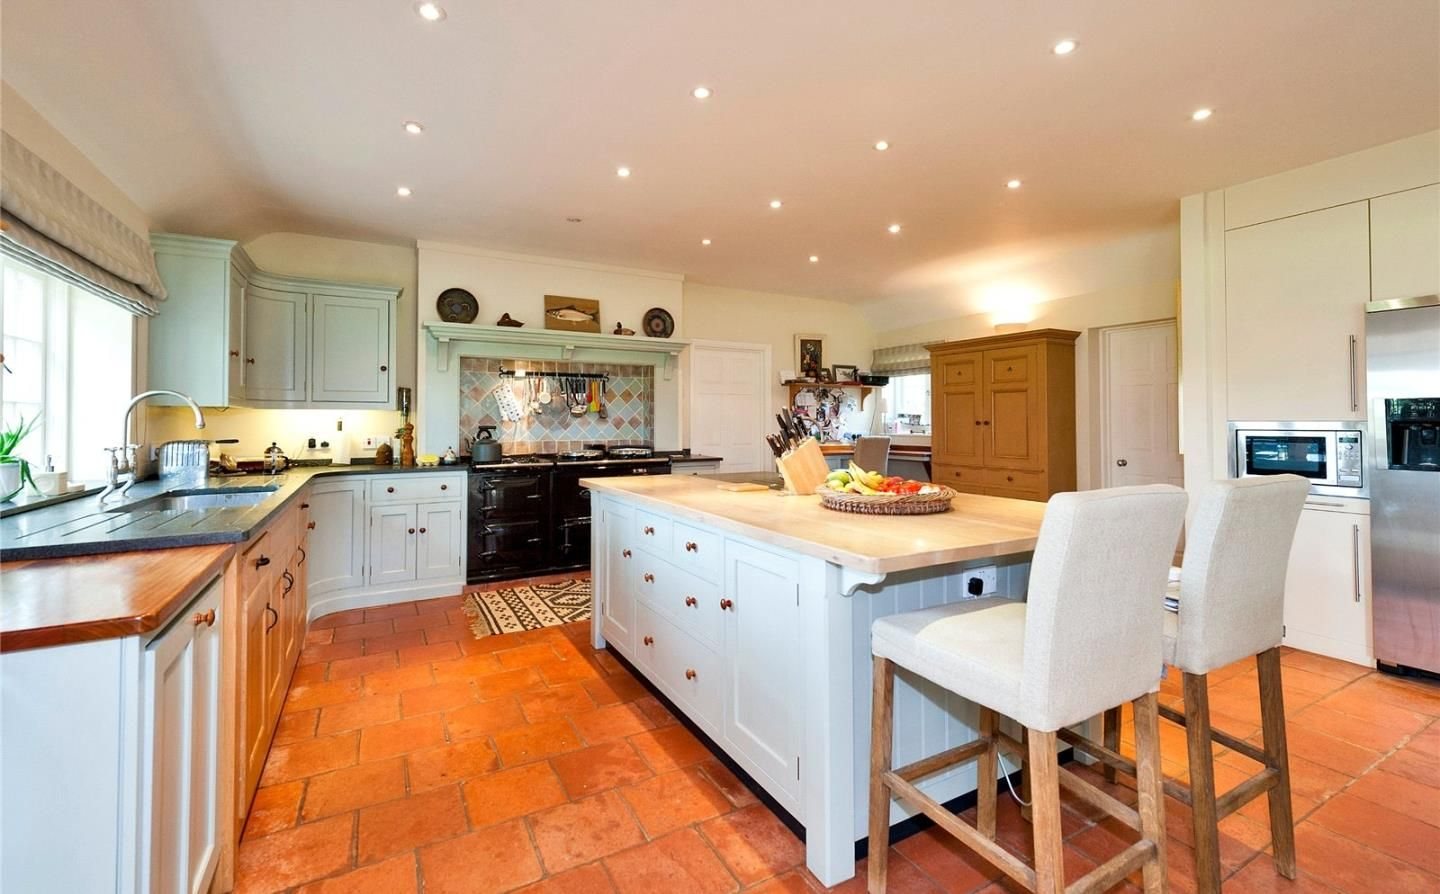 Aga Kitchen Appliances Approx 10yr Old Bespoke Painted Kitchen Dresser Island Worktops